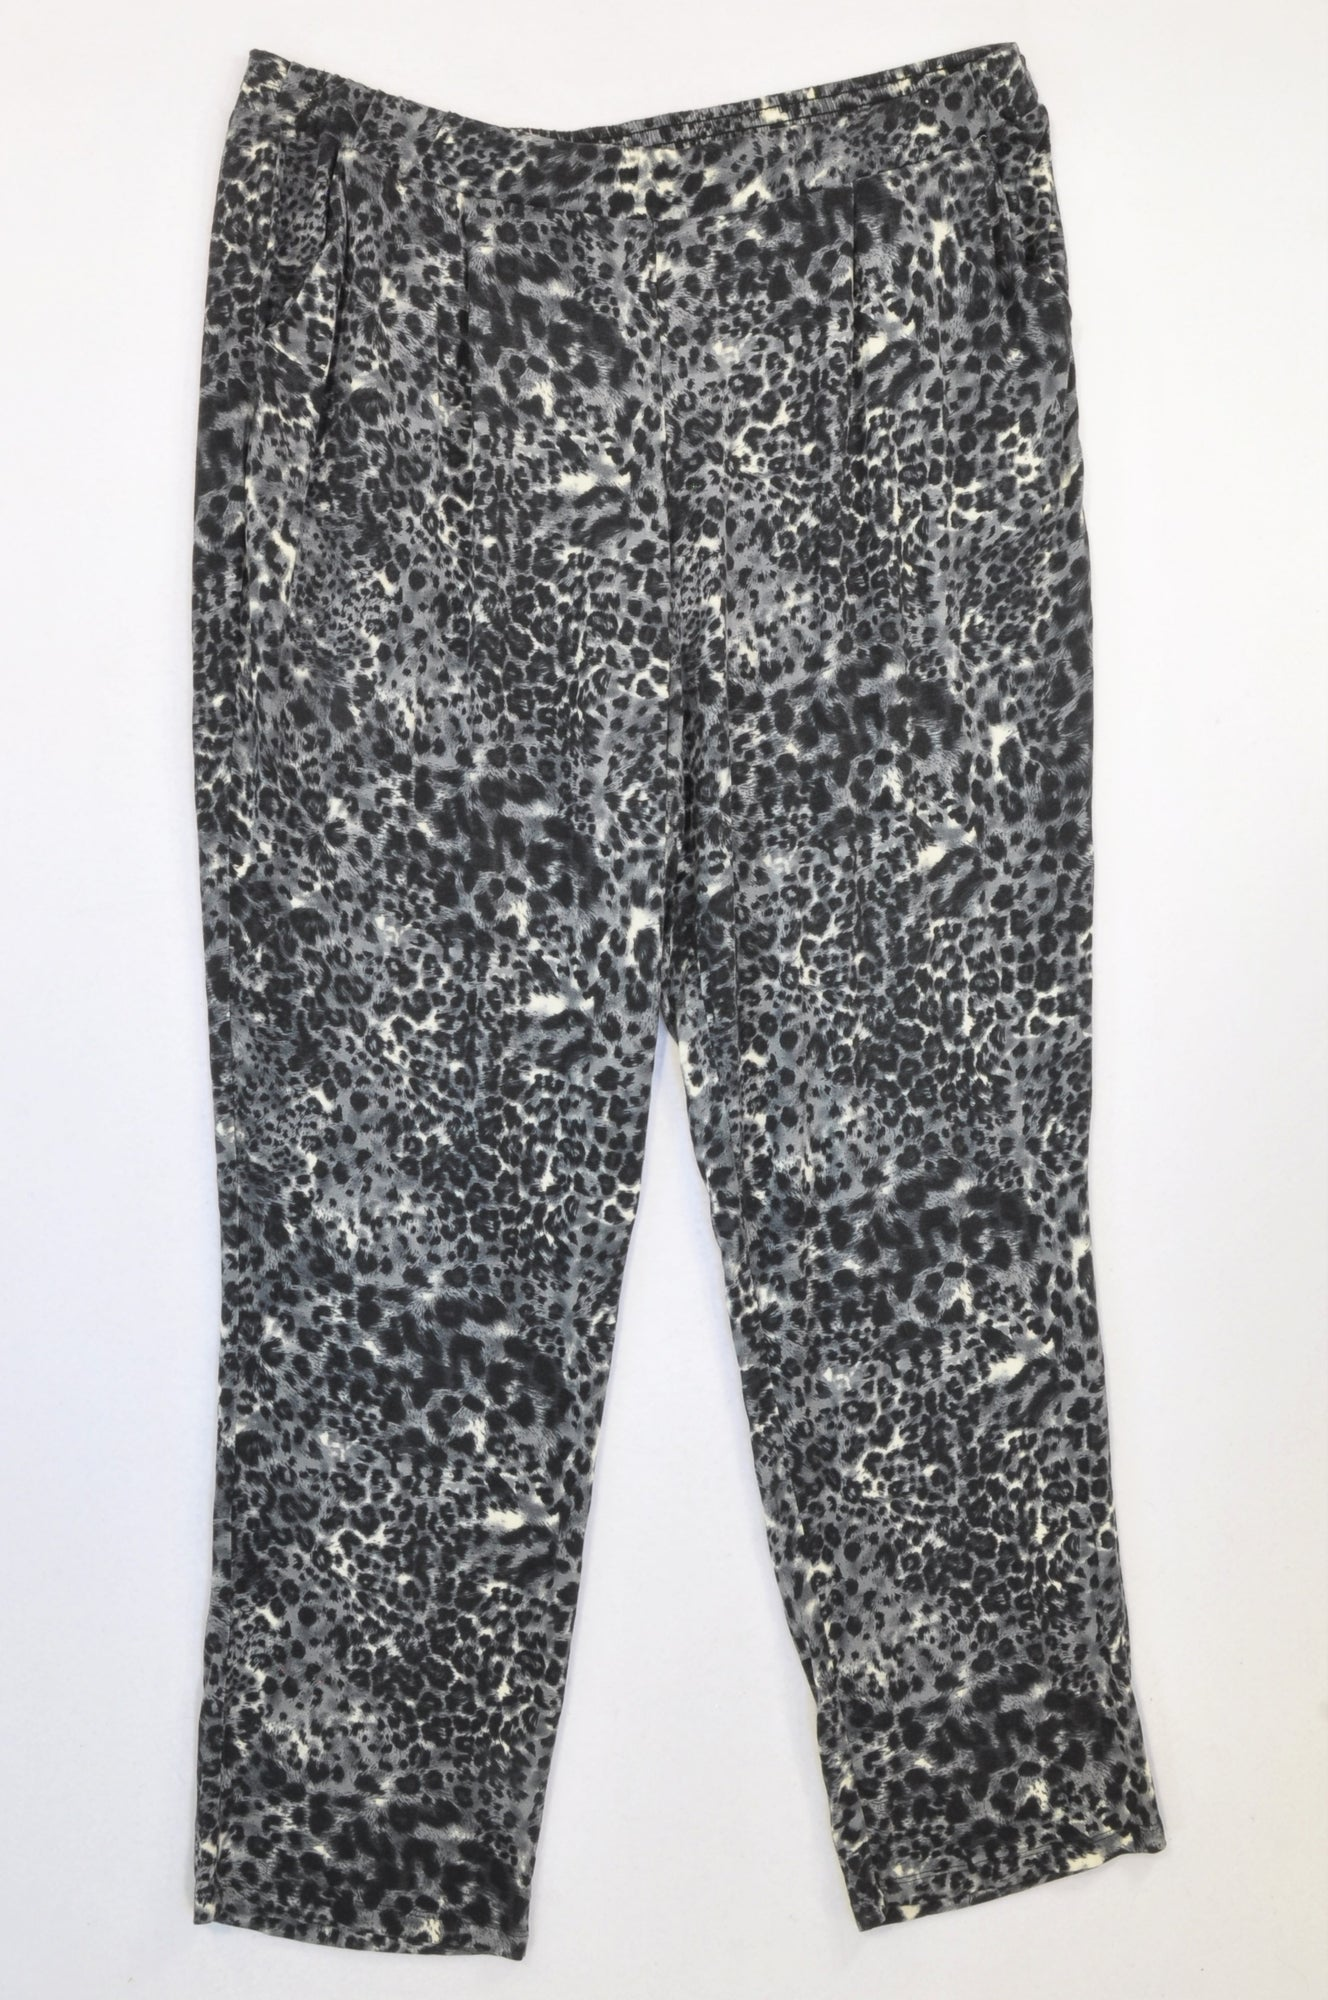 Queenspark Black & Grey Animal Print Jogger Pants Women Size XL